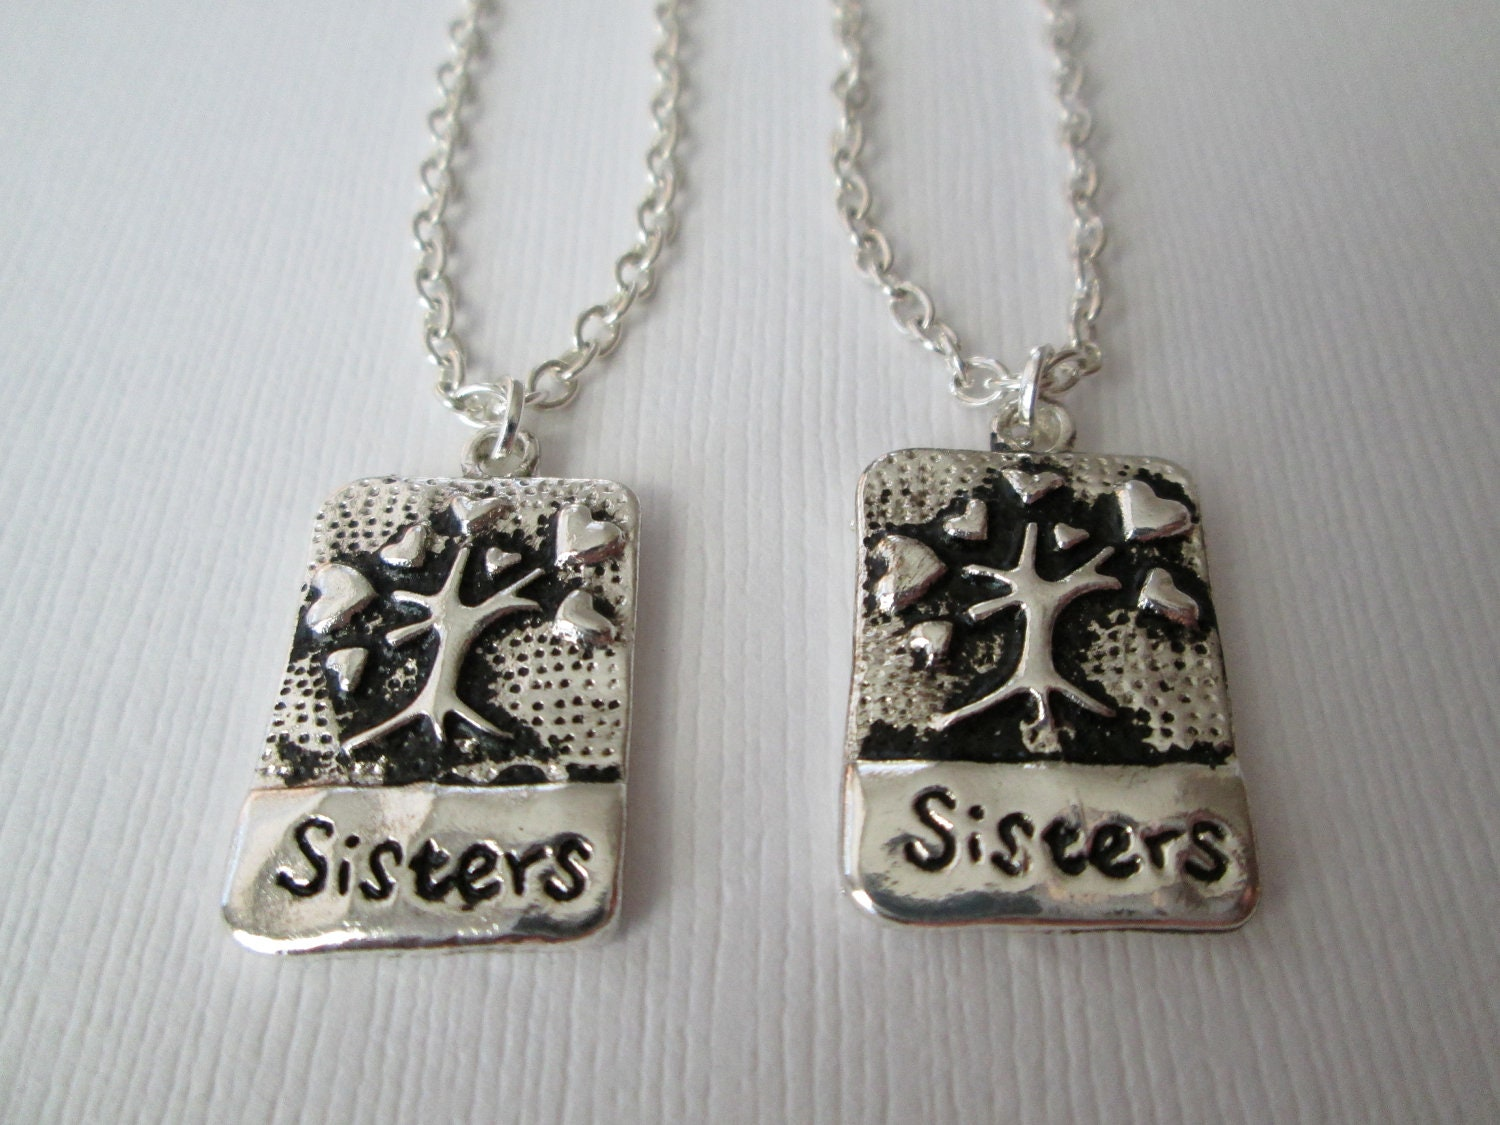 Dating friends sister jewelry